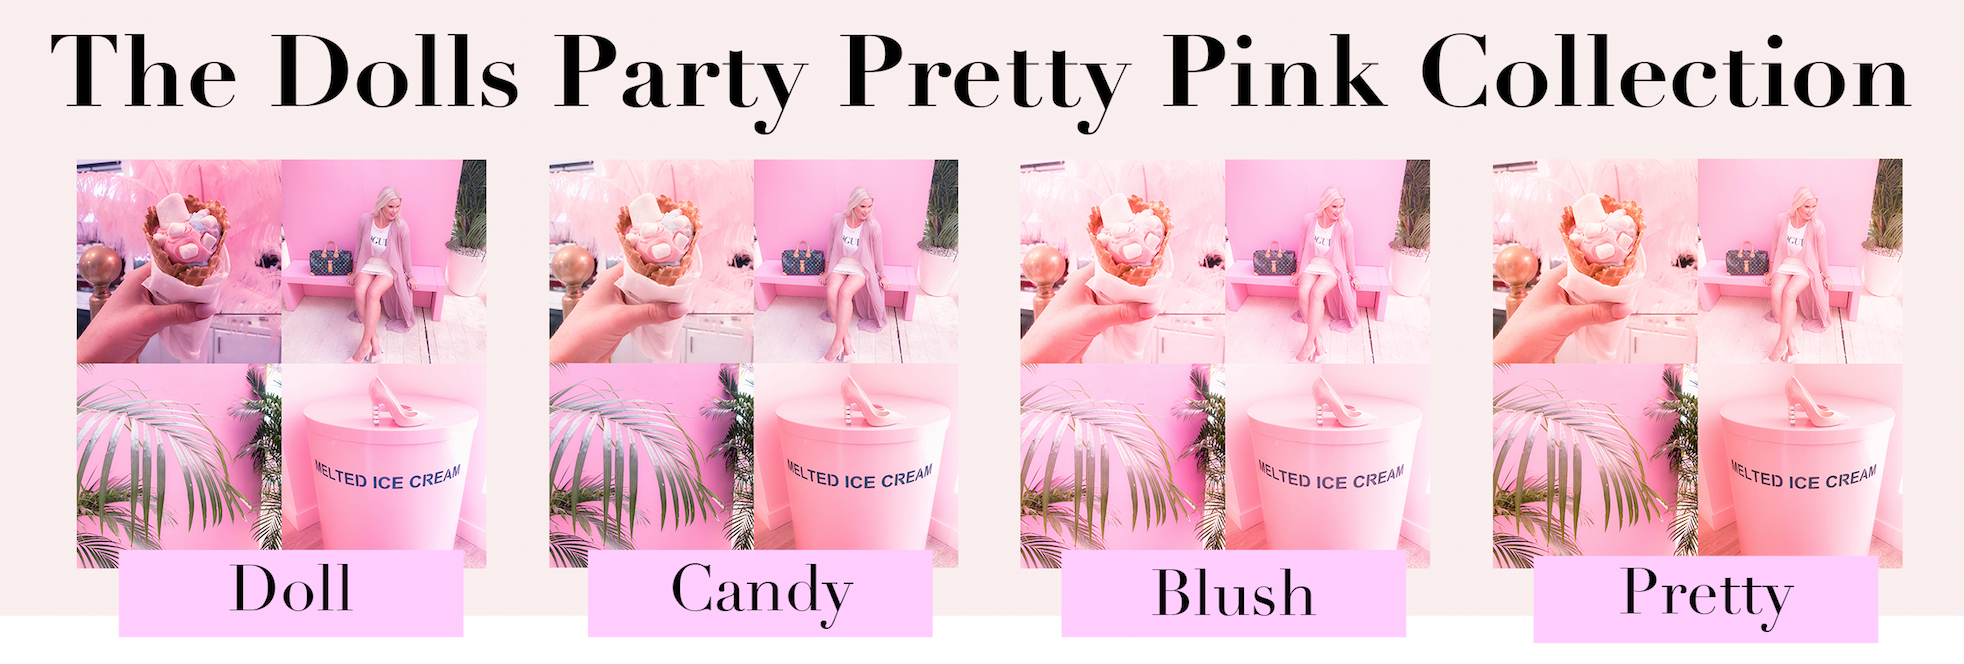 dolls-party-pretty-pink-presets-collection-filters.png